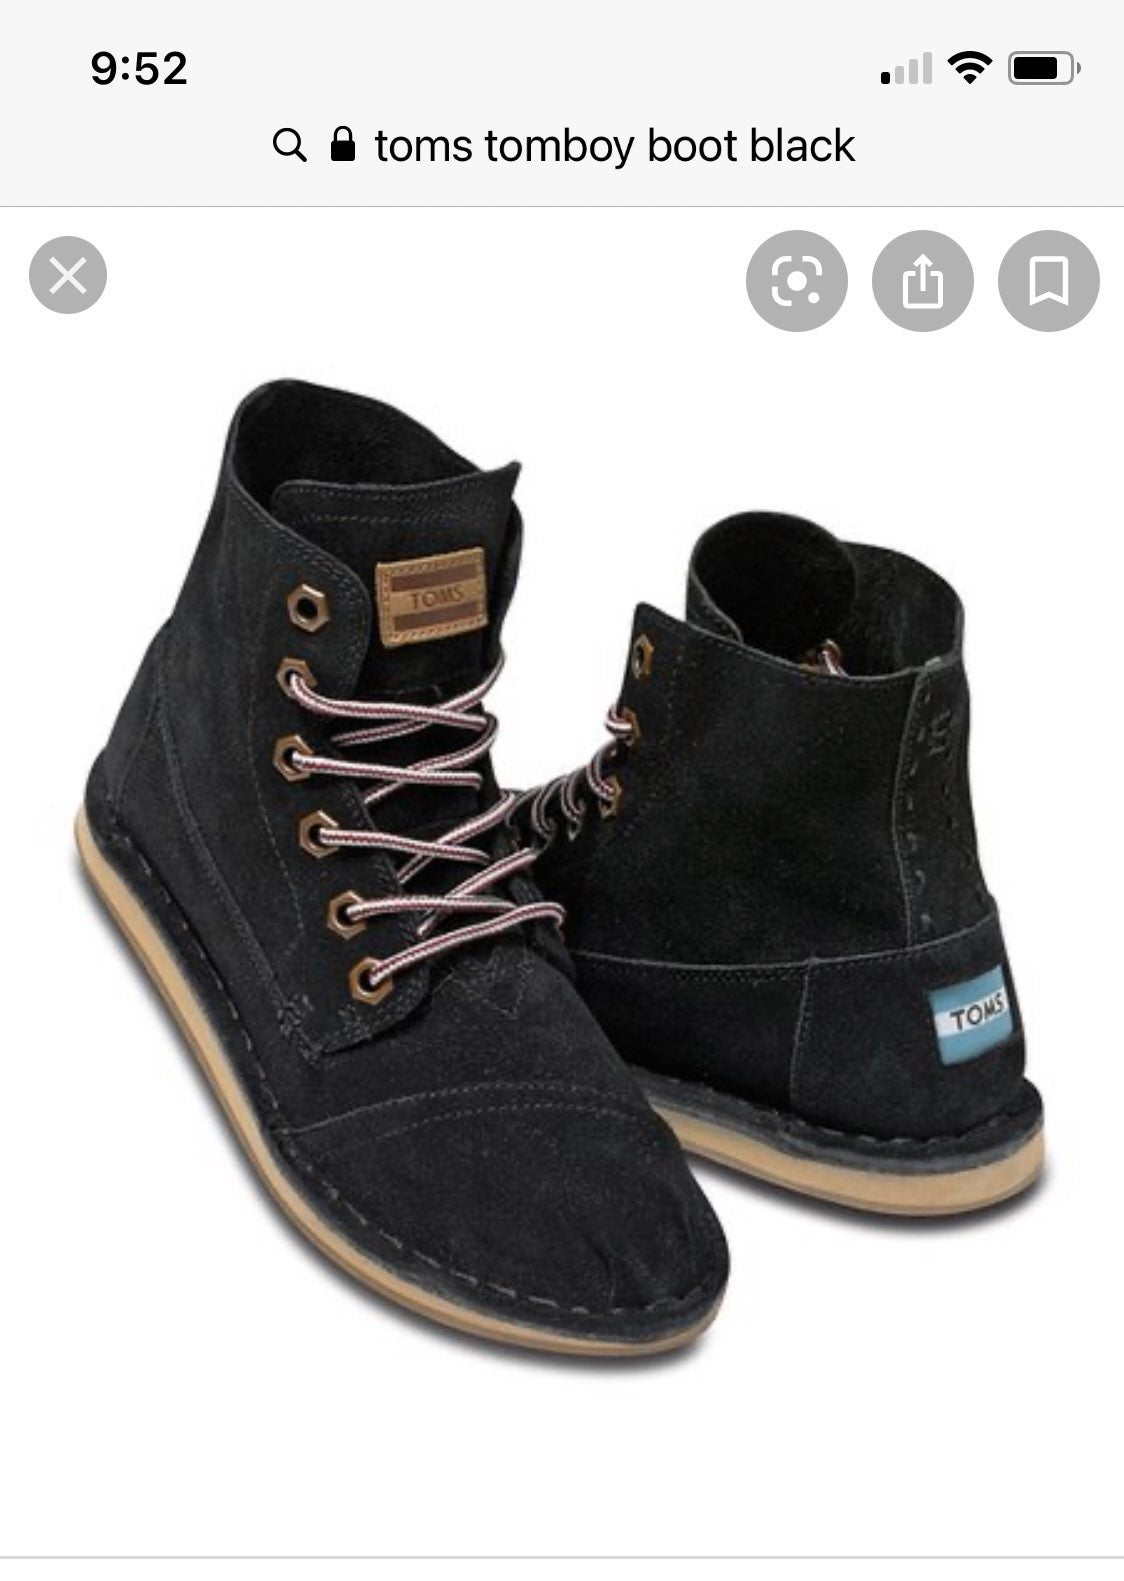 Toms Tomboy Boots 8 black suede chukka